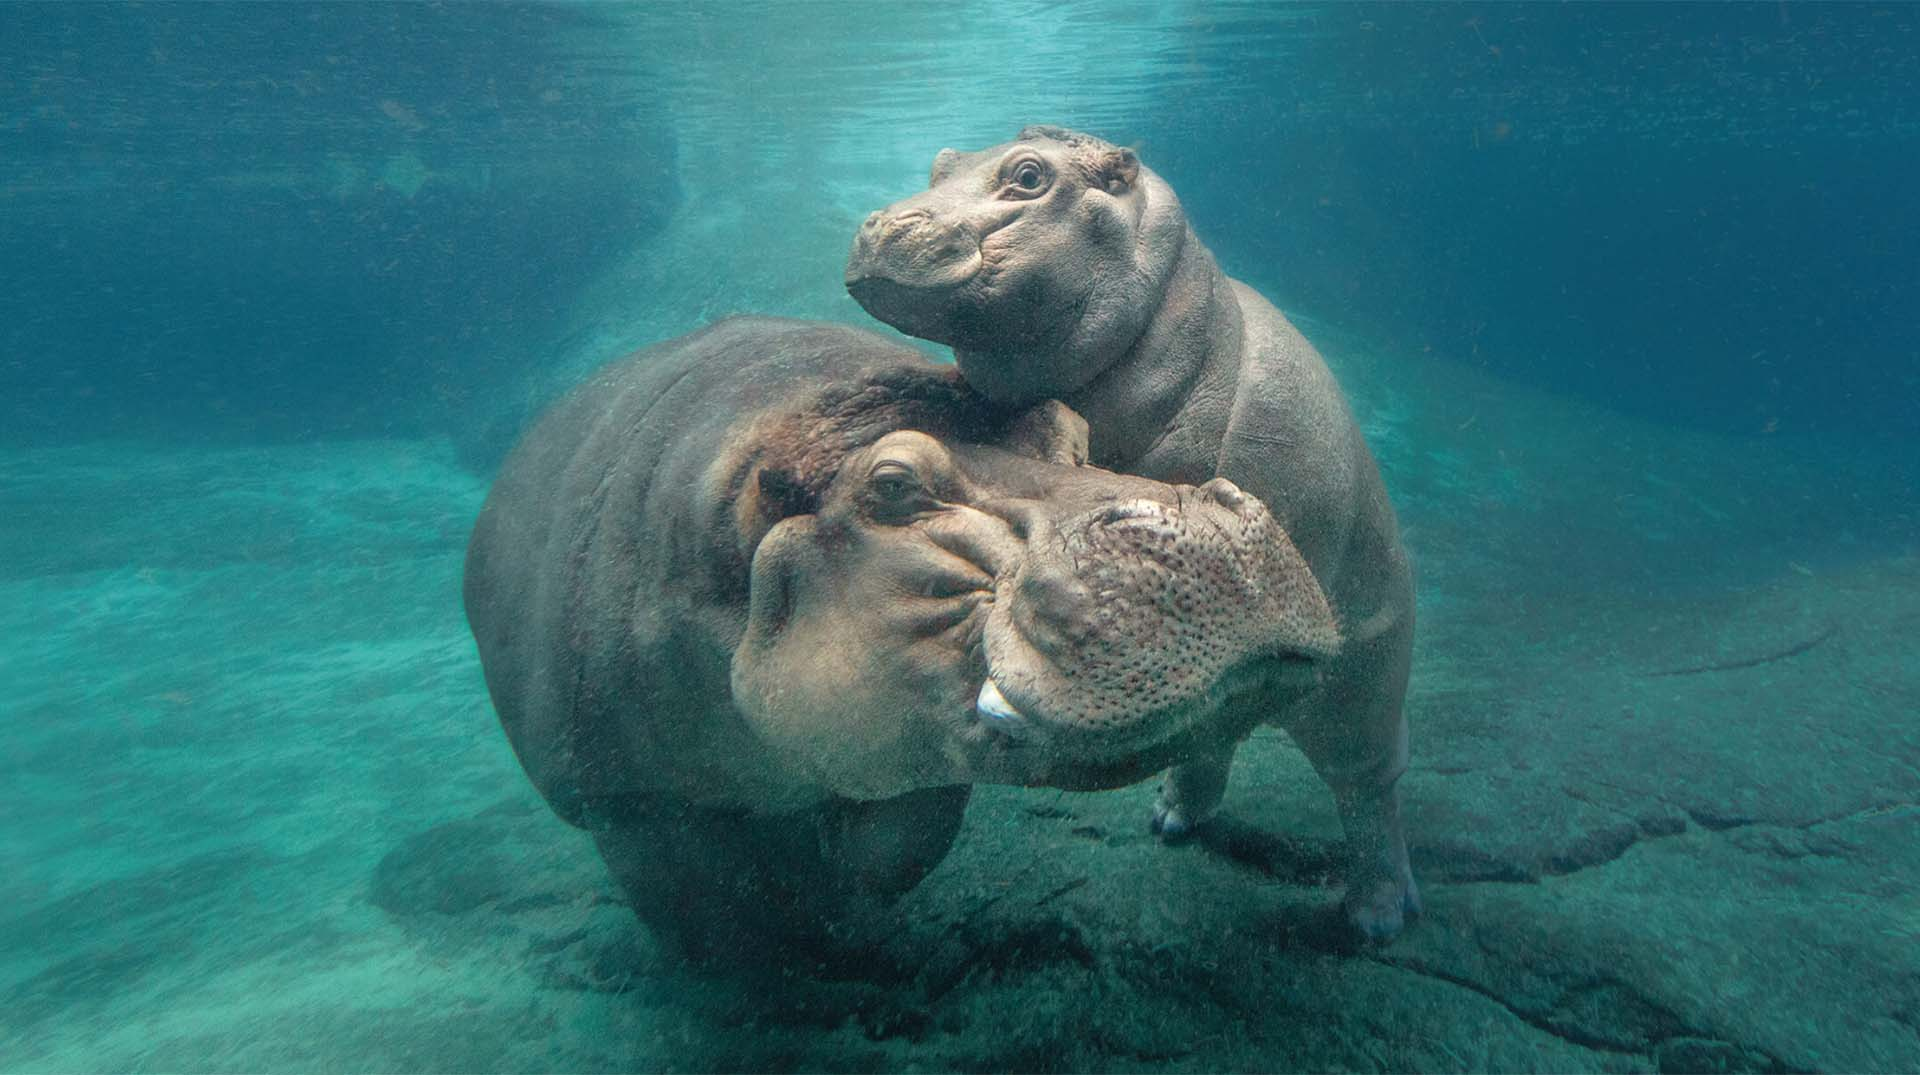 San Diego Zoo hippo Funani and her son Tony play underwater